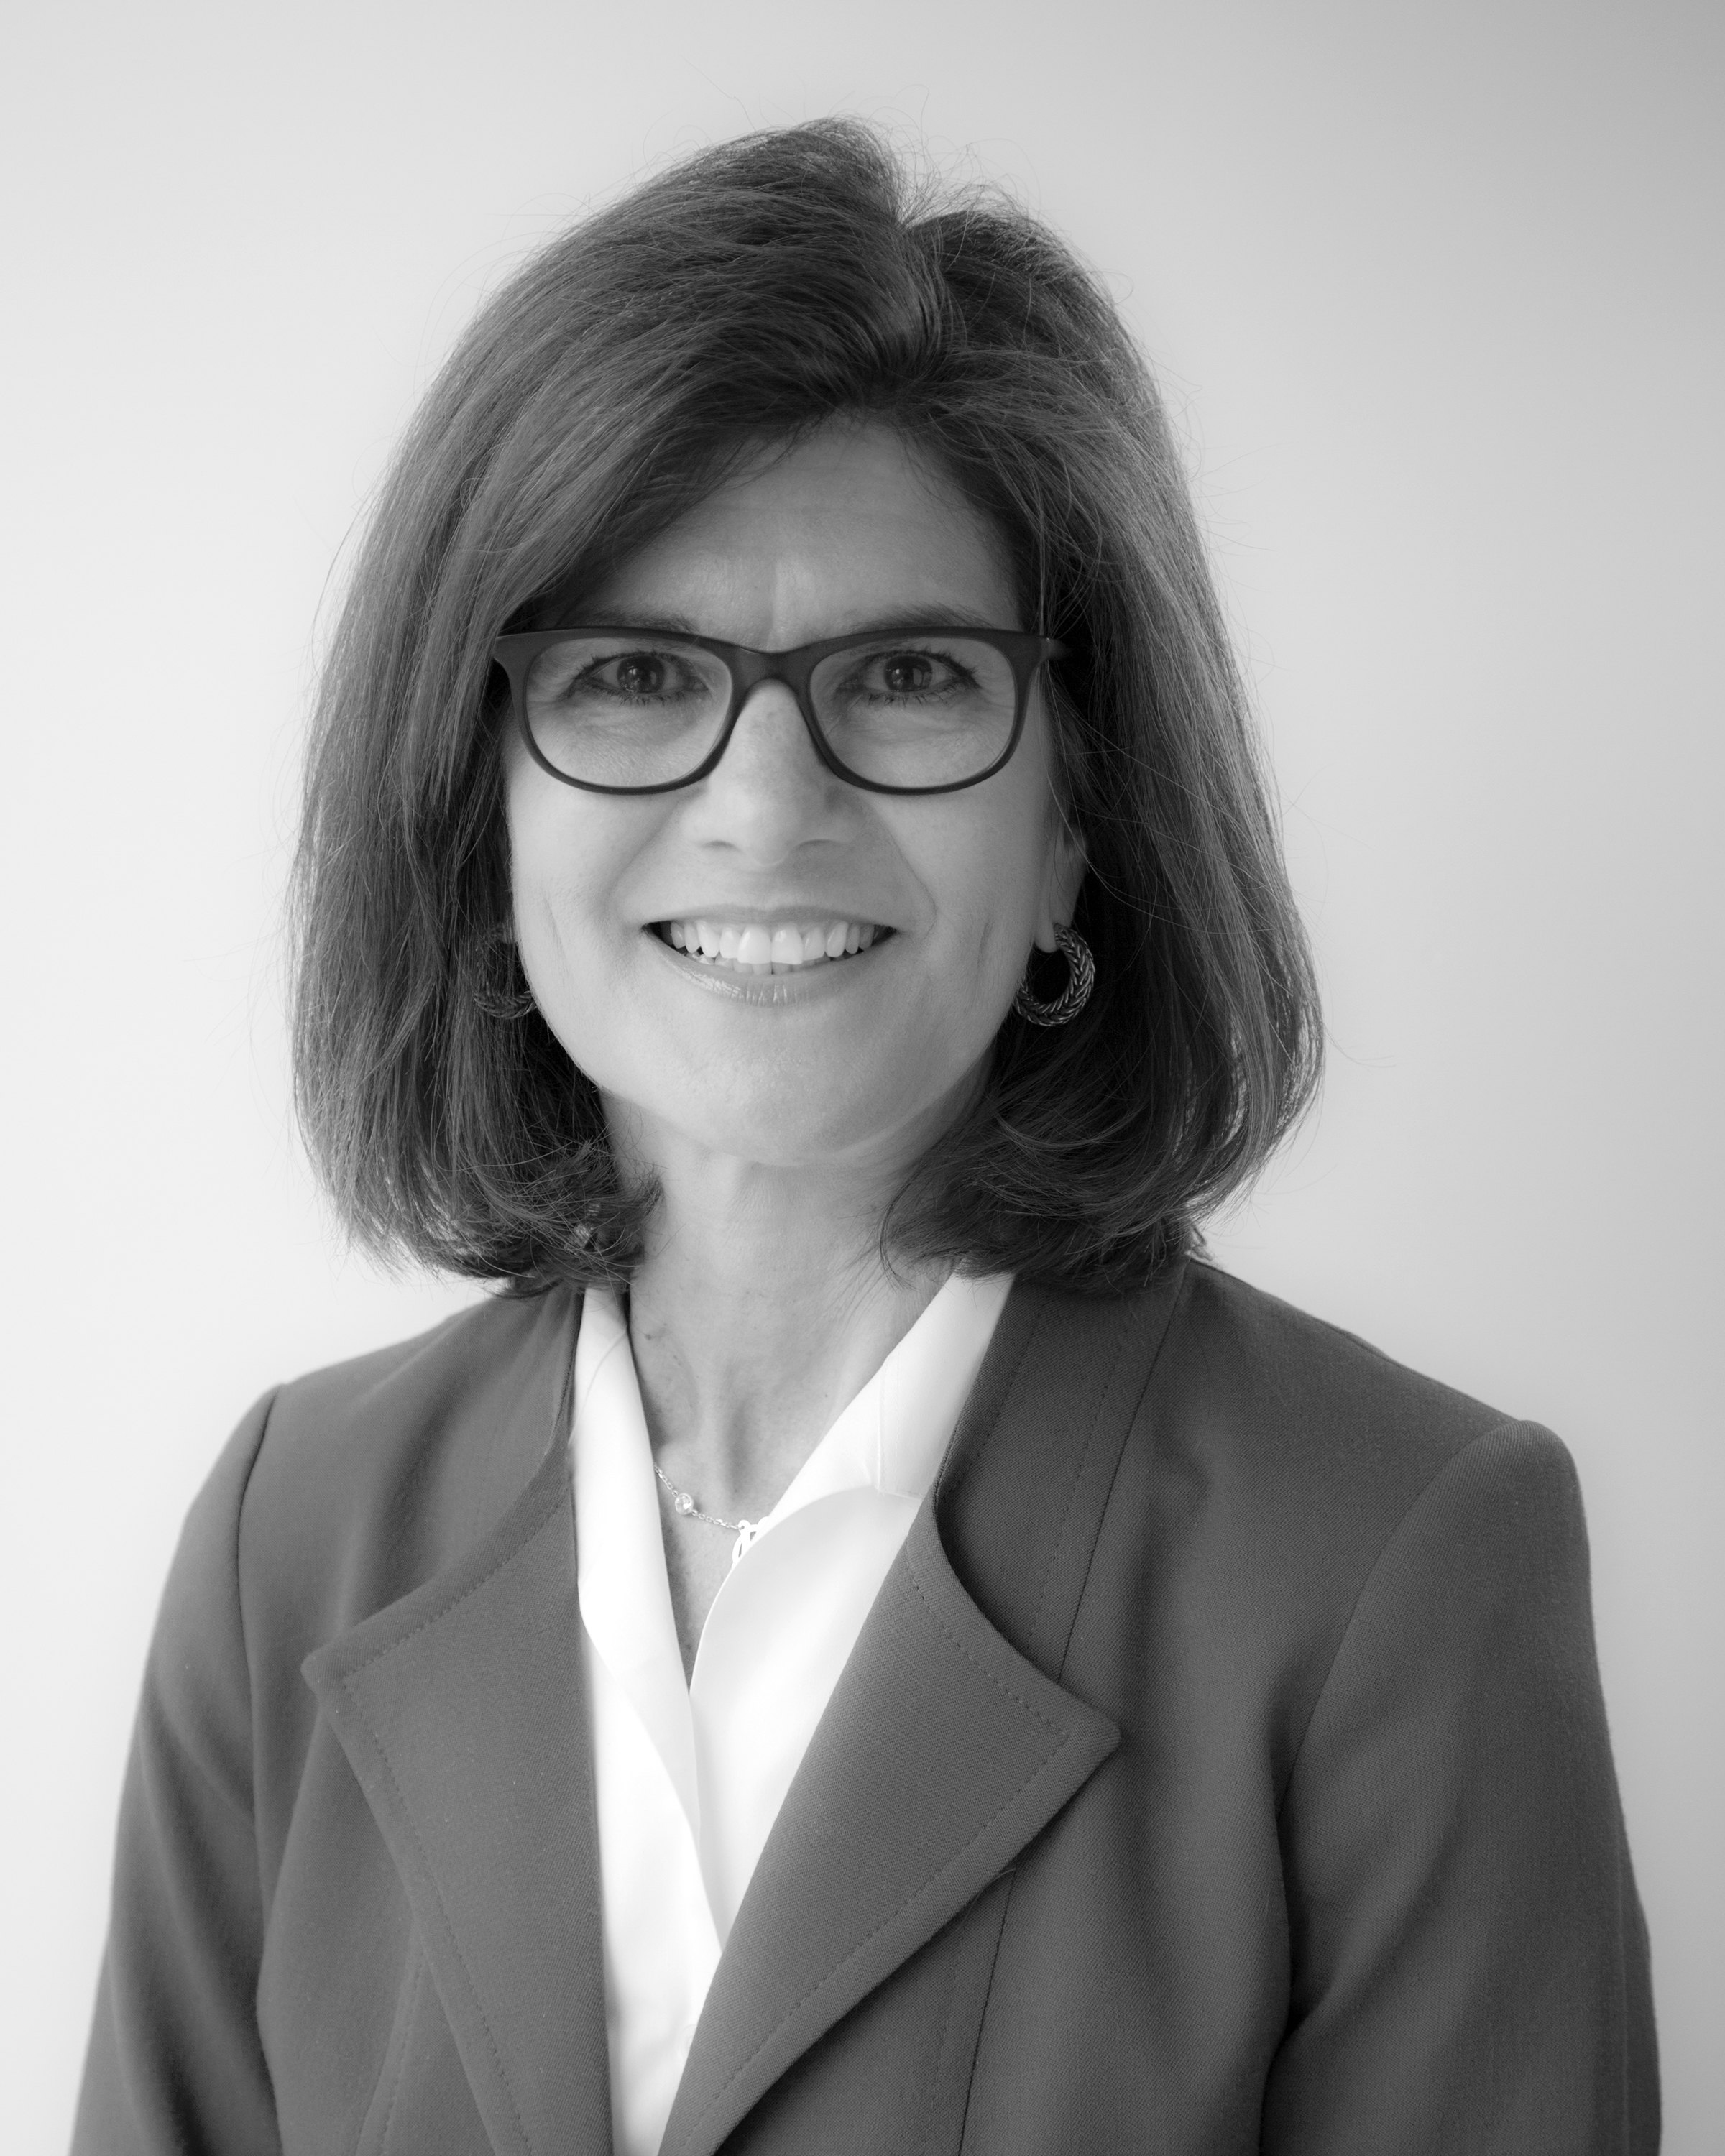 Boys & Girls Clubs of Chicago CEO Mimi LeClair